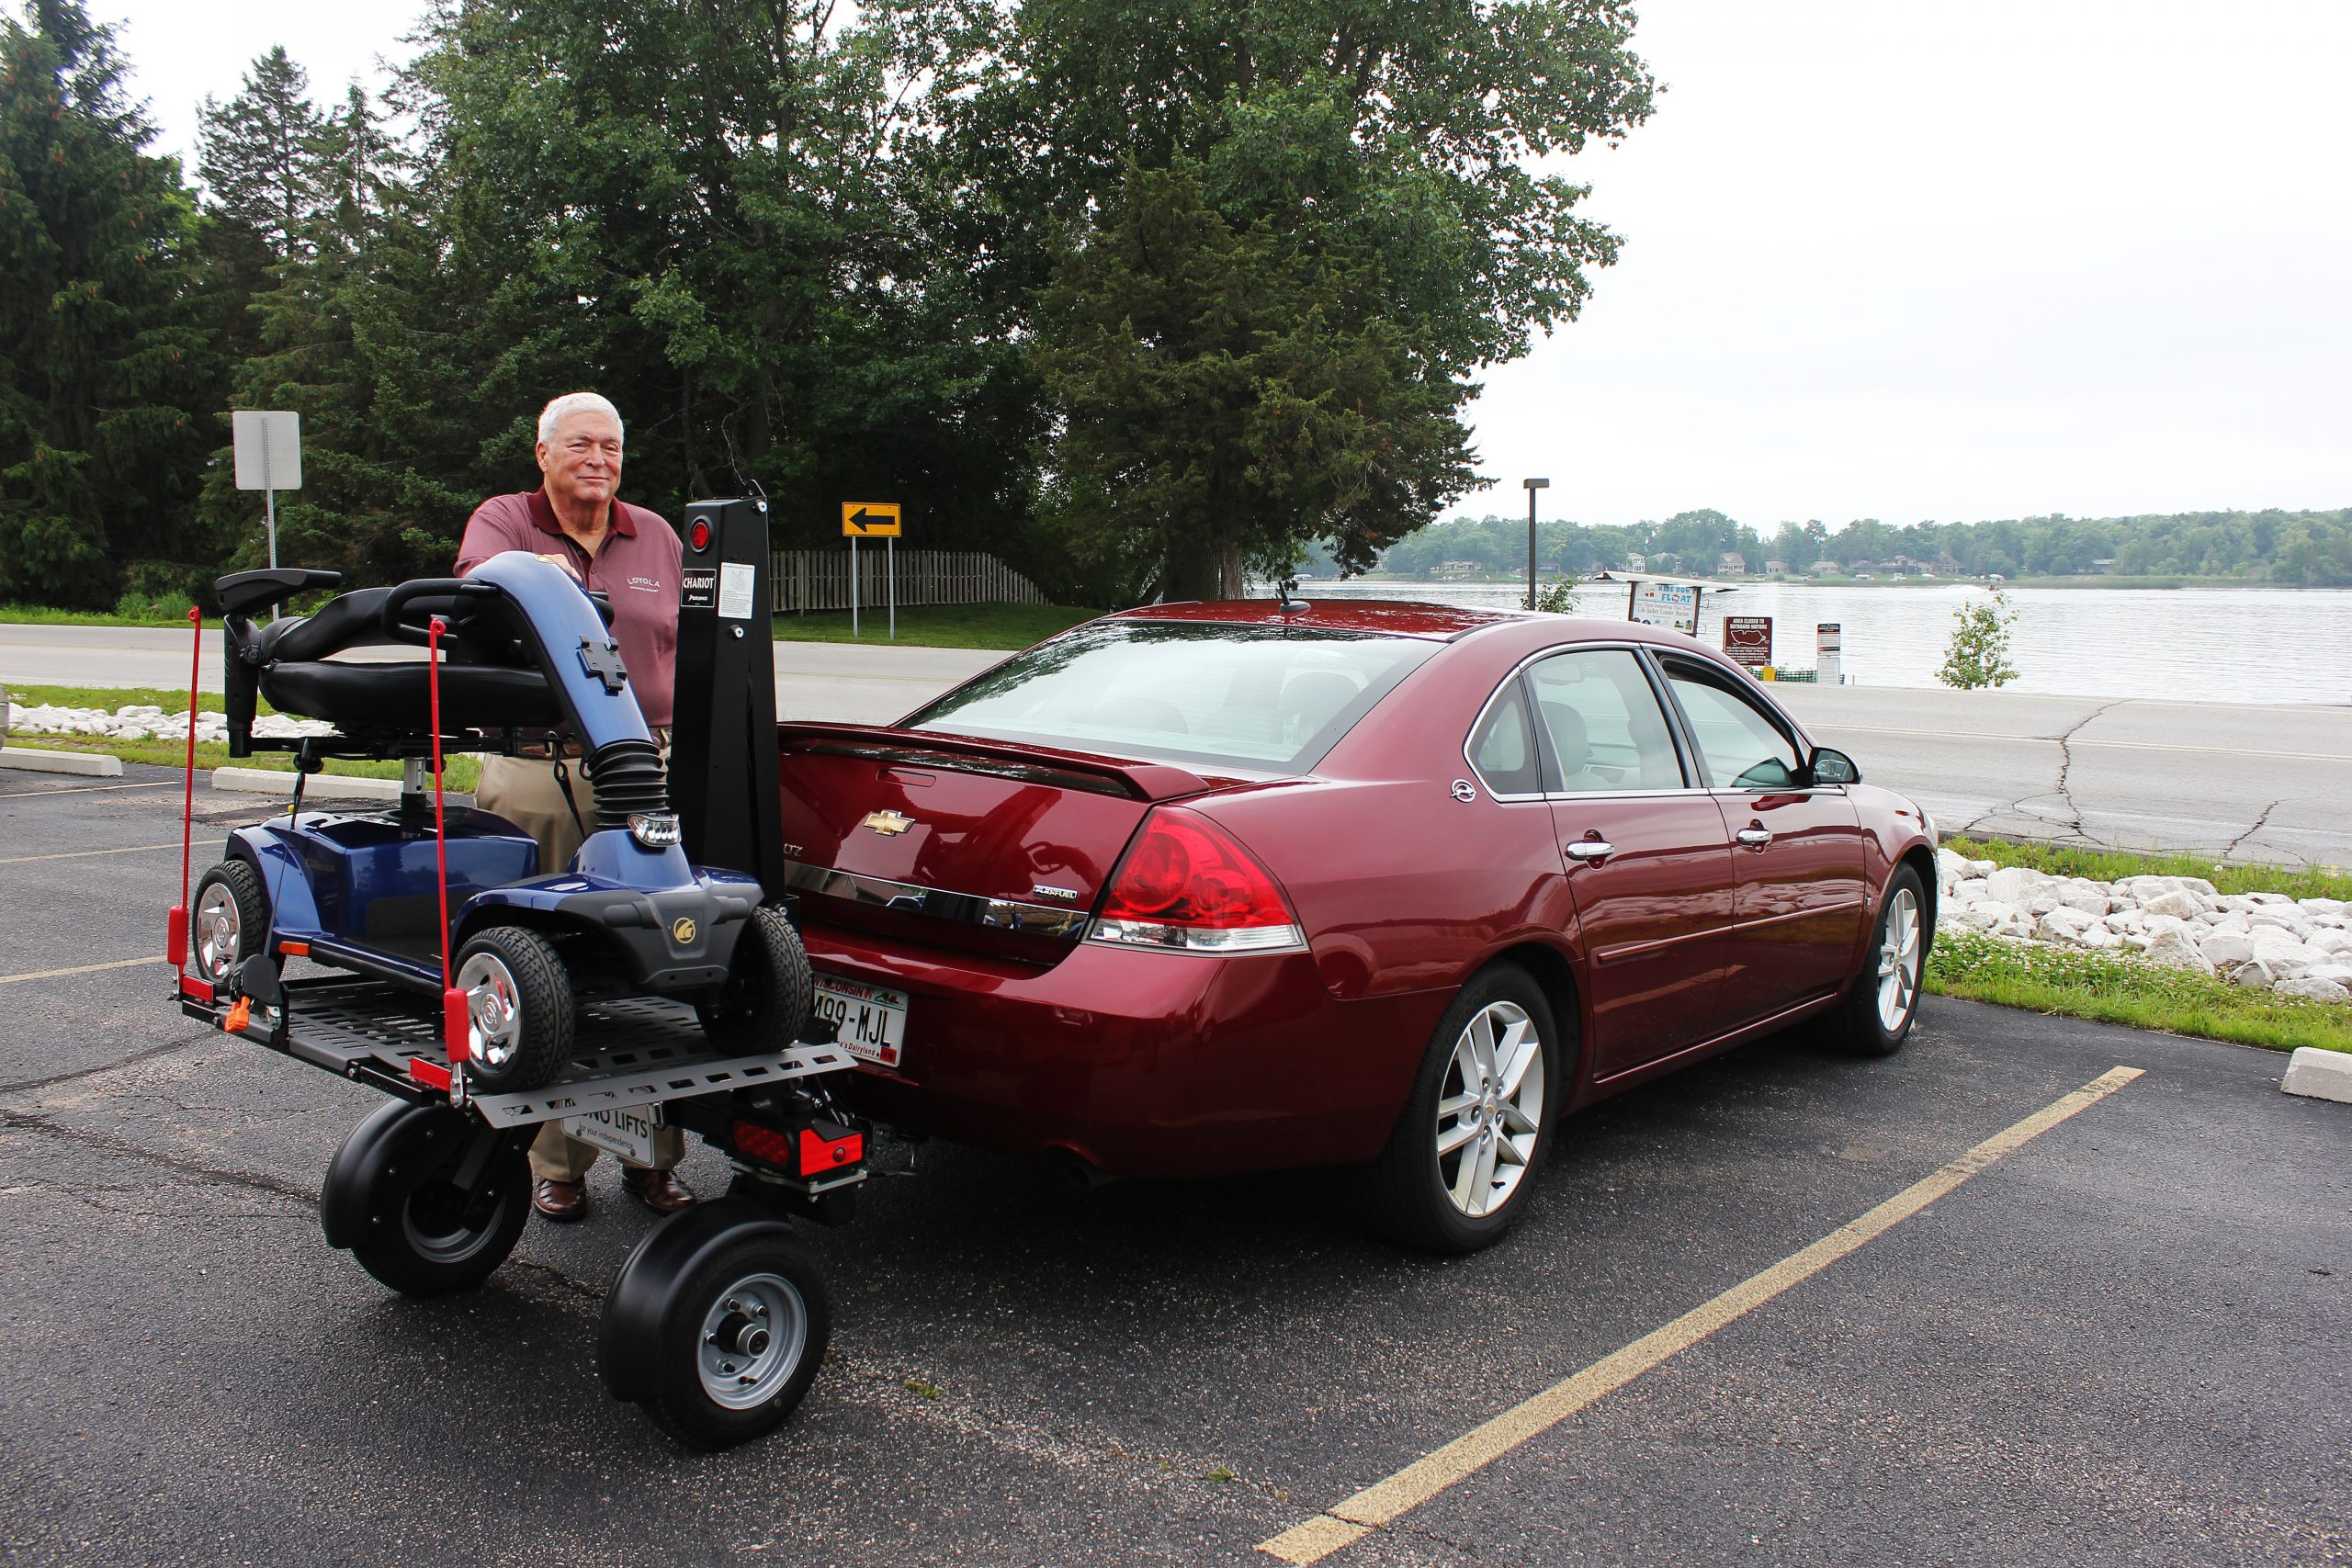 A man standing beside a scooter on a chariot attached to a car